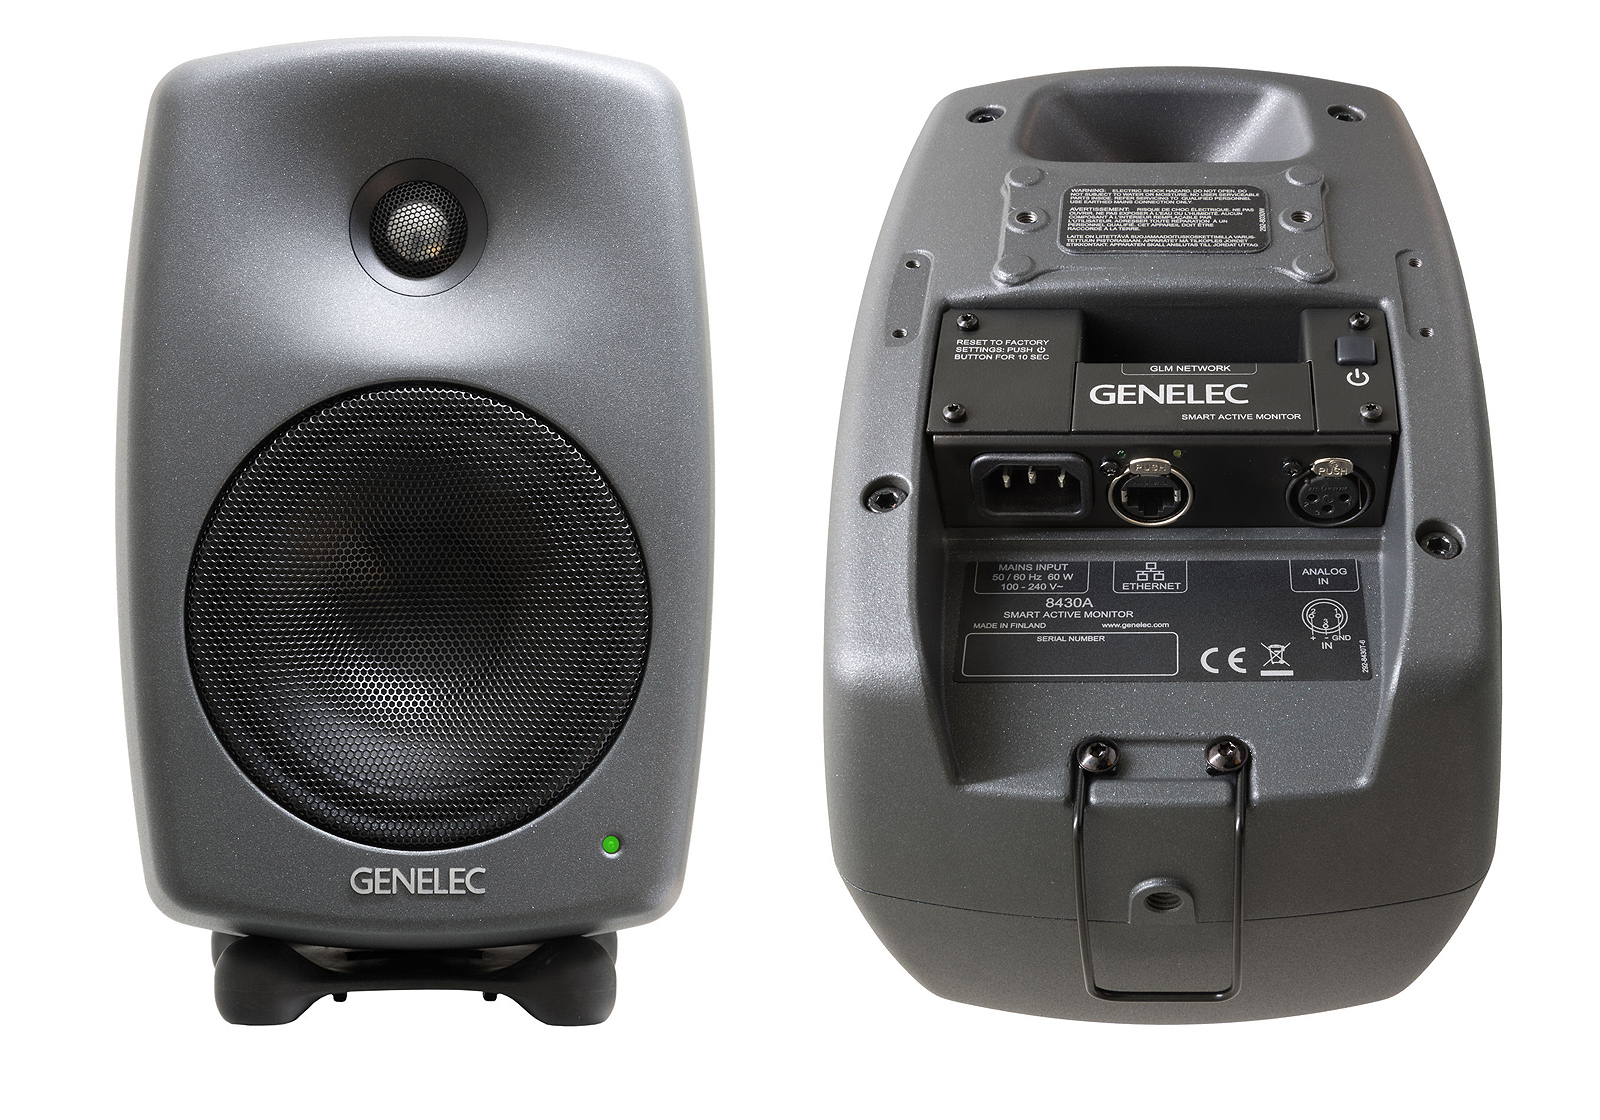 ISE 2017: Genelec focus on AoIP technology